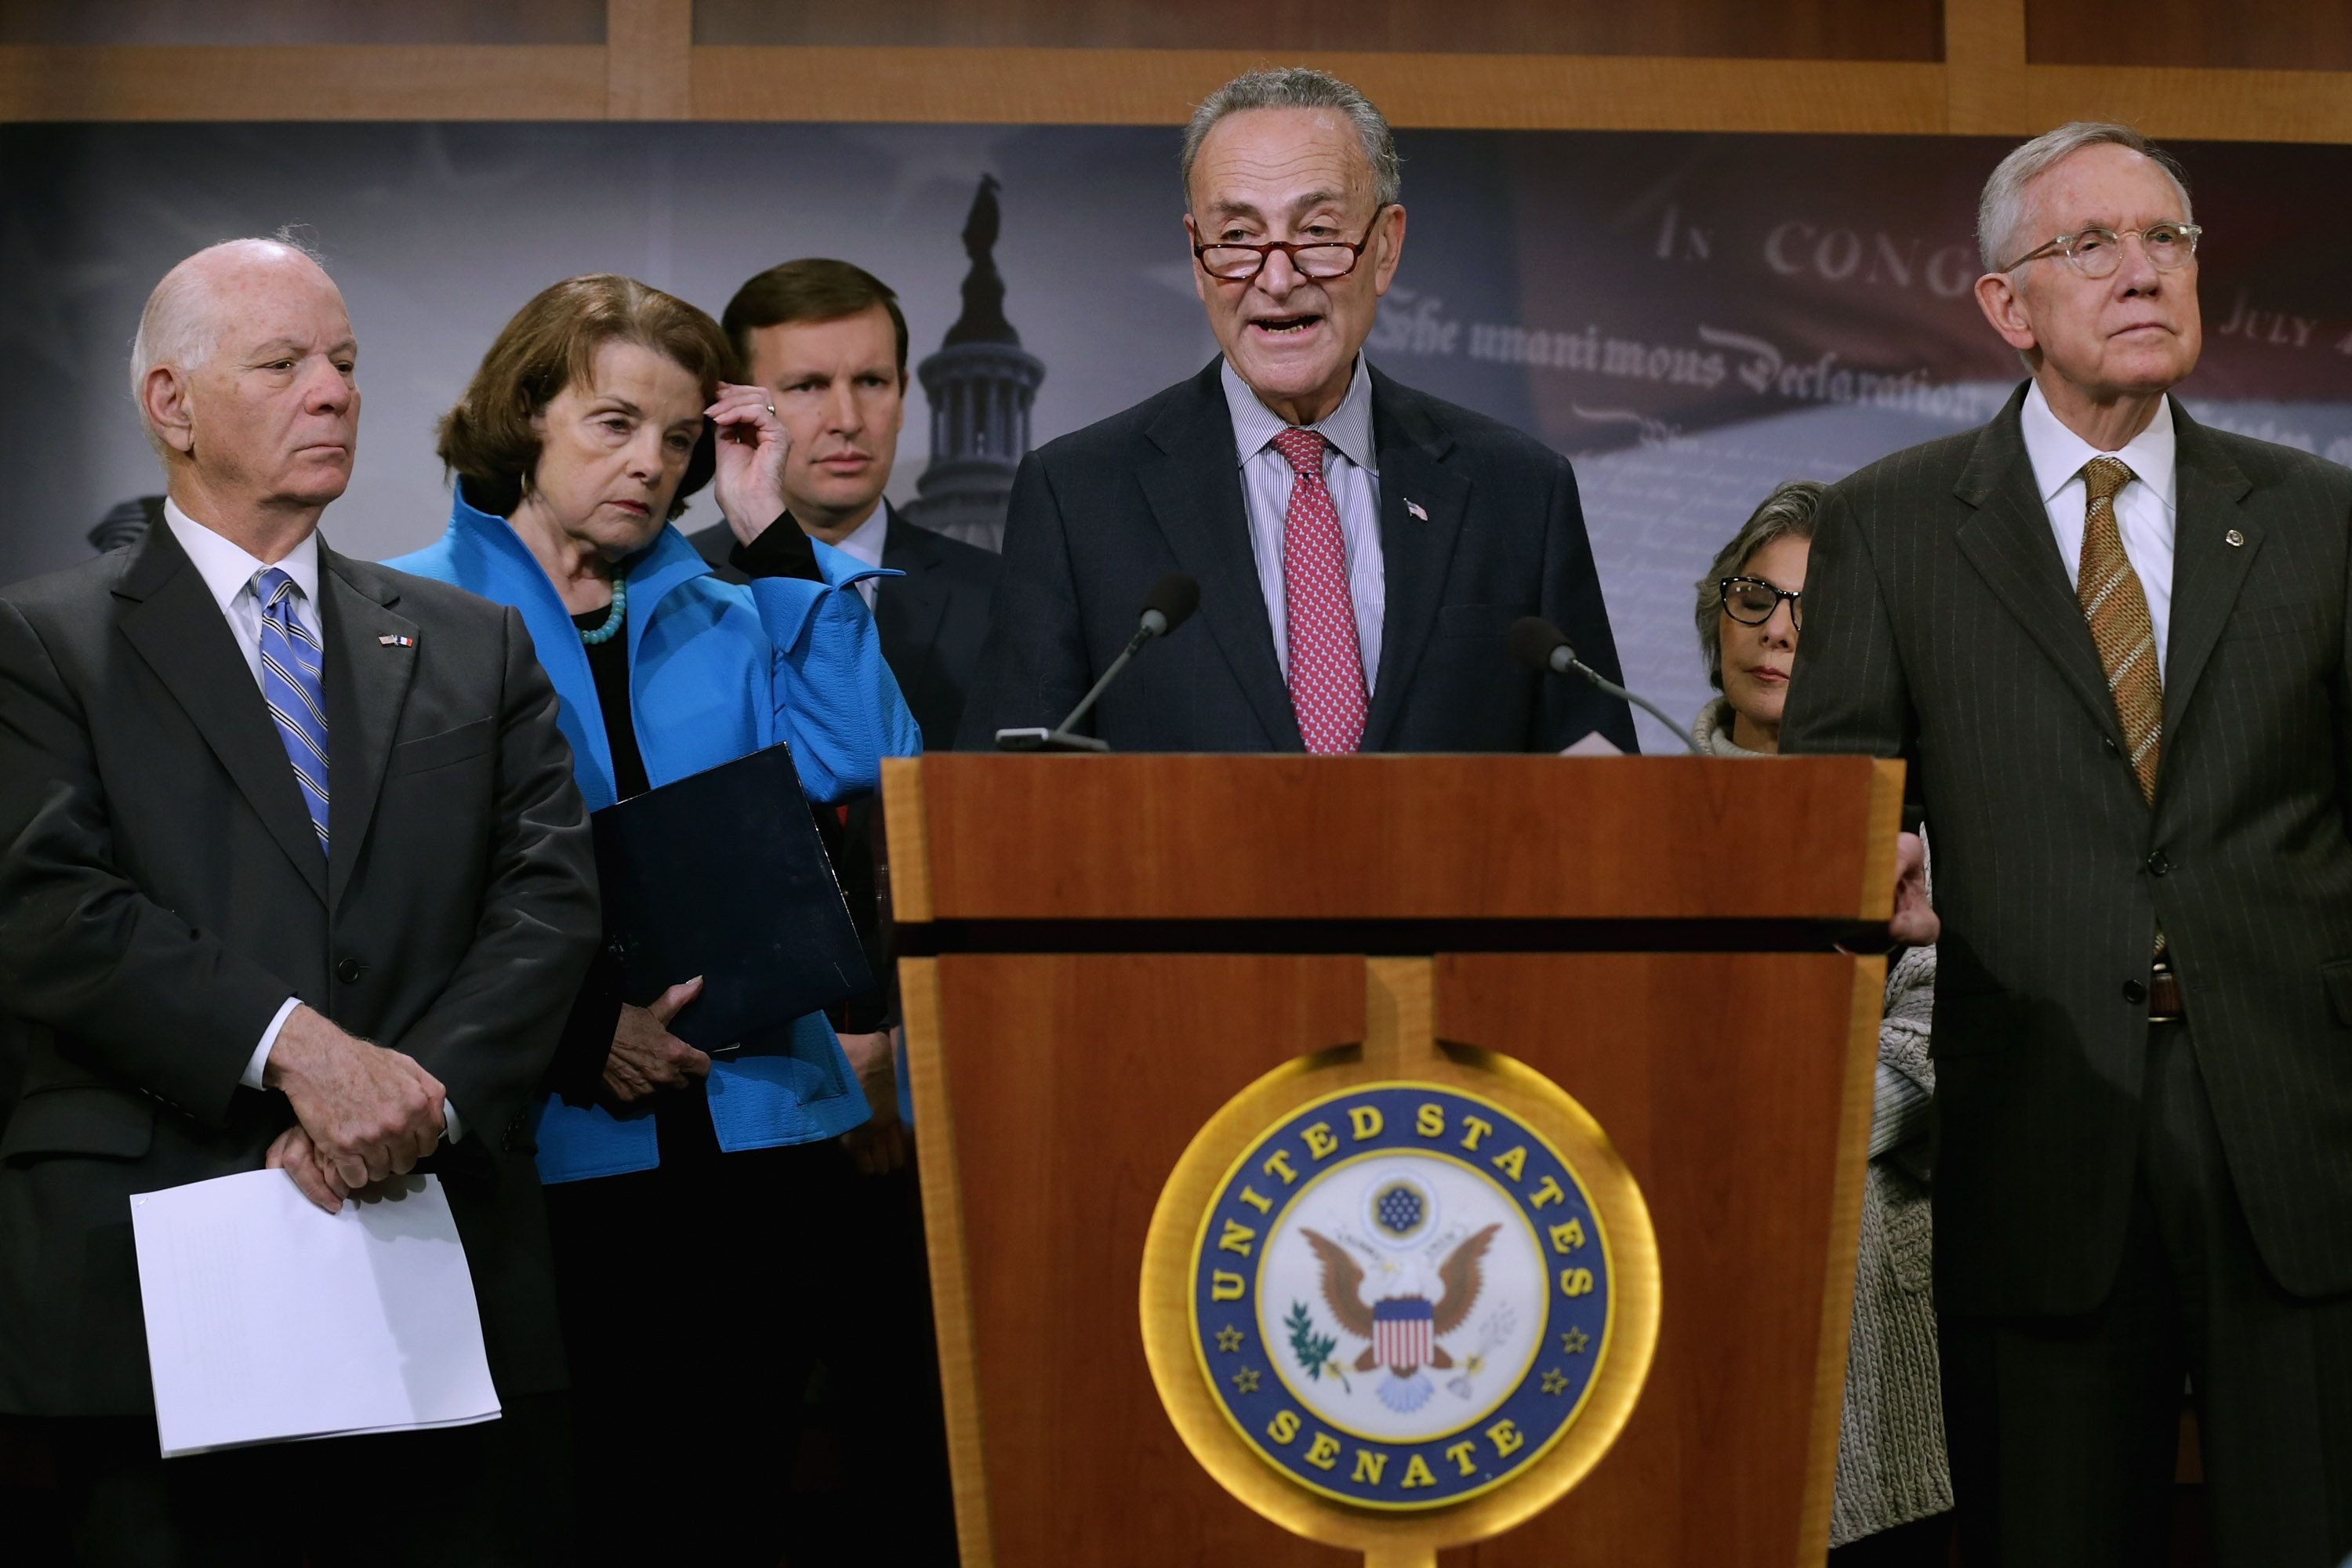 WASHINGTON, DC - NOVEMBER 19:  (L-R) Sen. Ben Cardin (D-MD), Sen. Dianne Feinstein (D-CA), Sen. Chris Murphy (D-CT), Sen. Charles Schumer (D-NY) and  Senate Minority Leader Harry Reid (D-NV) hold a news conference about Democratic legislative proposals in the wake of last week's terror attacks in Paris at the U.S. Capitol November 19, 2015 in Washington, DC. Senate Democrats proposed tightening the visa waiver program, requiring more biometric information and e-chip passports from overseas travelers visiting the United States and closing a loophole that allows people on the Terrorist Screening Center's No Fly List to purchase firearms or explosives. 'If you are too dangerous to board a plane then you are too dangerous to buy a gun,' said Feinstein.  (Photo by Chip Somodevilla/Getty Images)